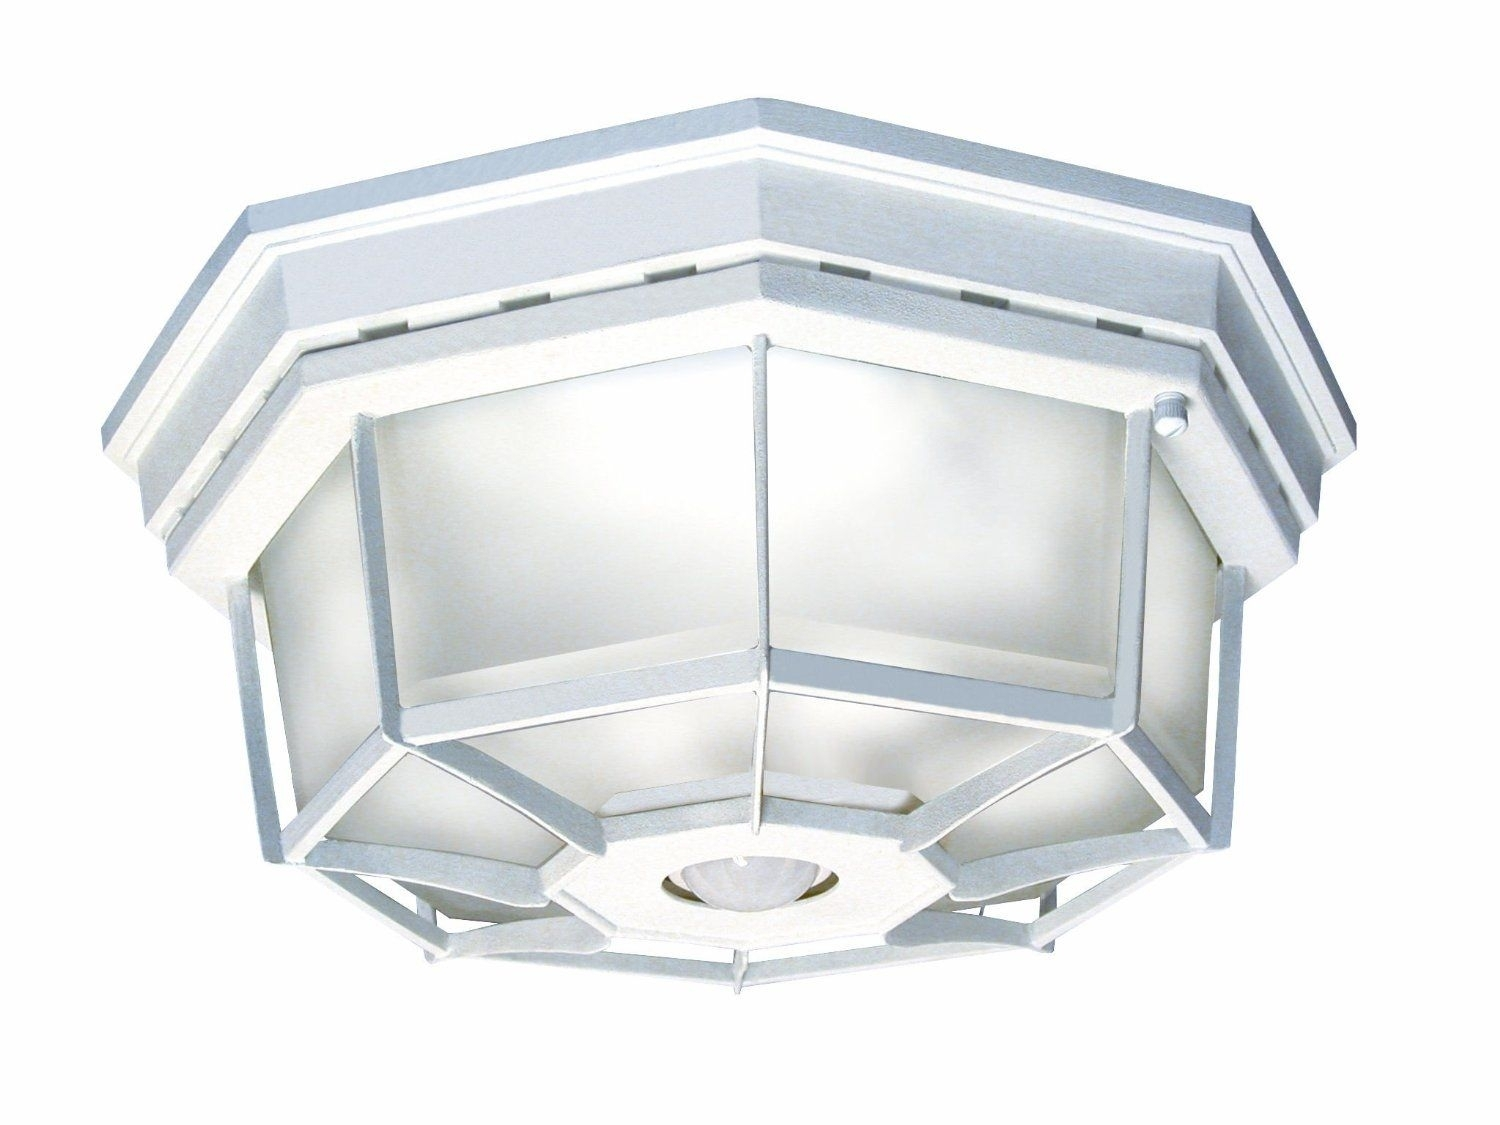 Inspiration about Motion Sensor Outdoor Ceiling Light Fixture | Http With Regard To Outdoor Ceiling Motion Sensor Lights (#3 of 15)